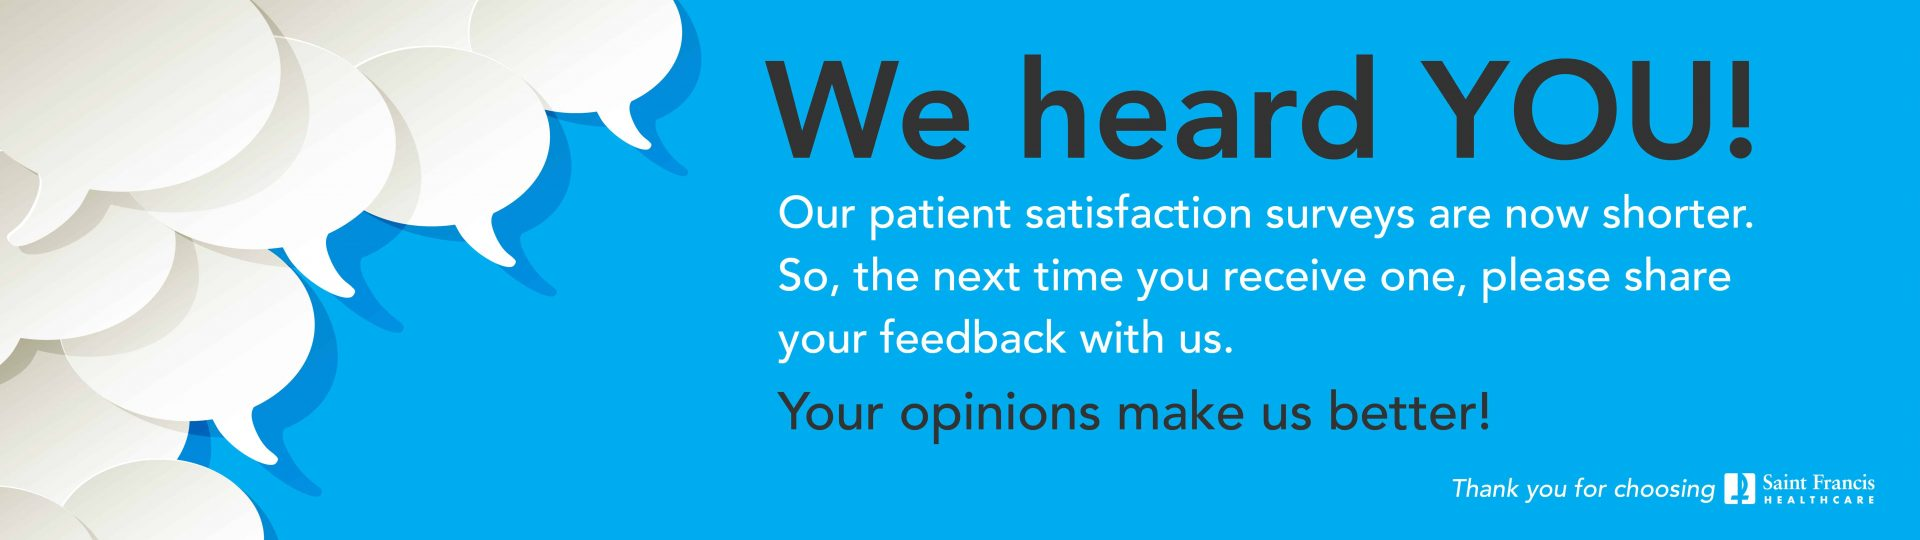 Our patient satisfaction surveys are now shorter!